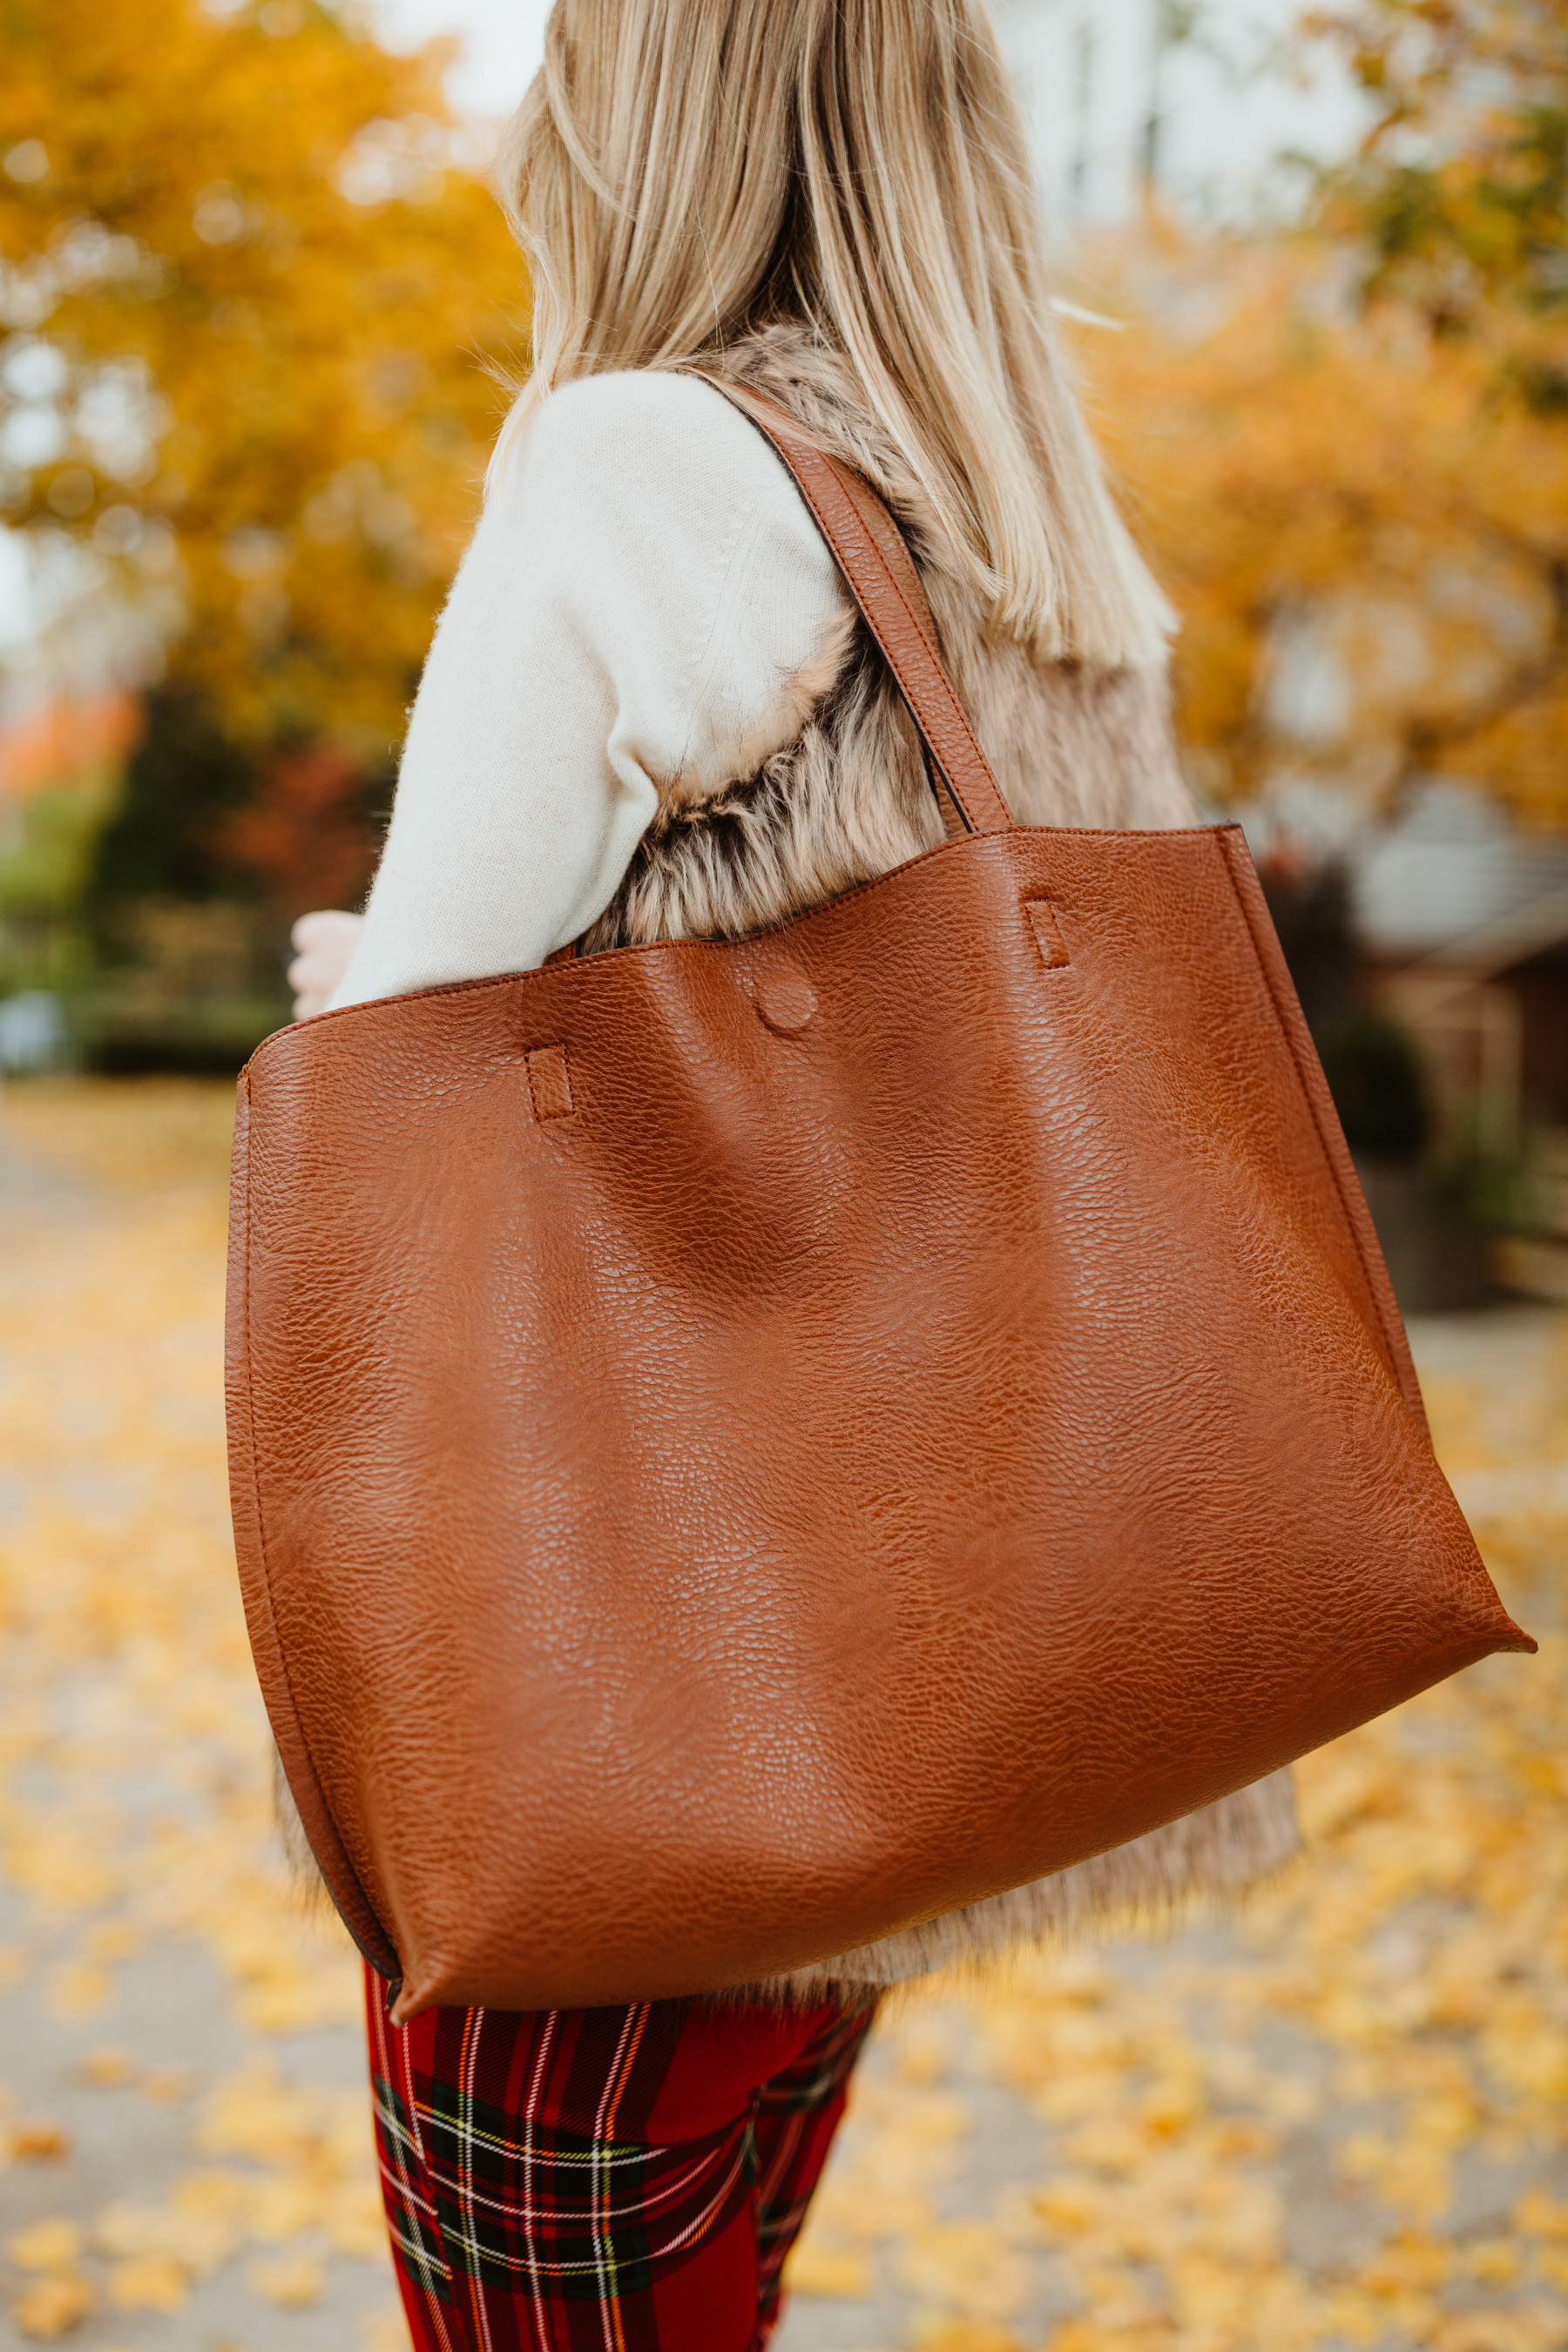 $48 Faux Leather Tote